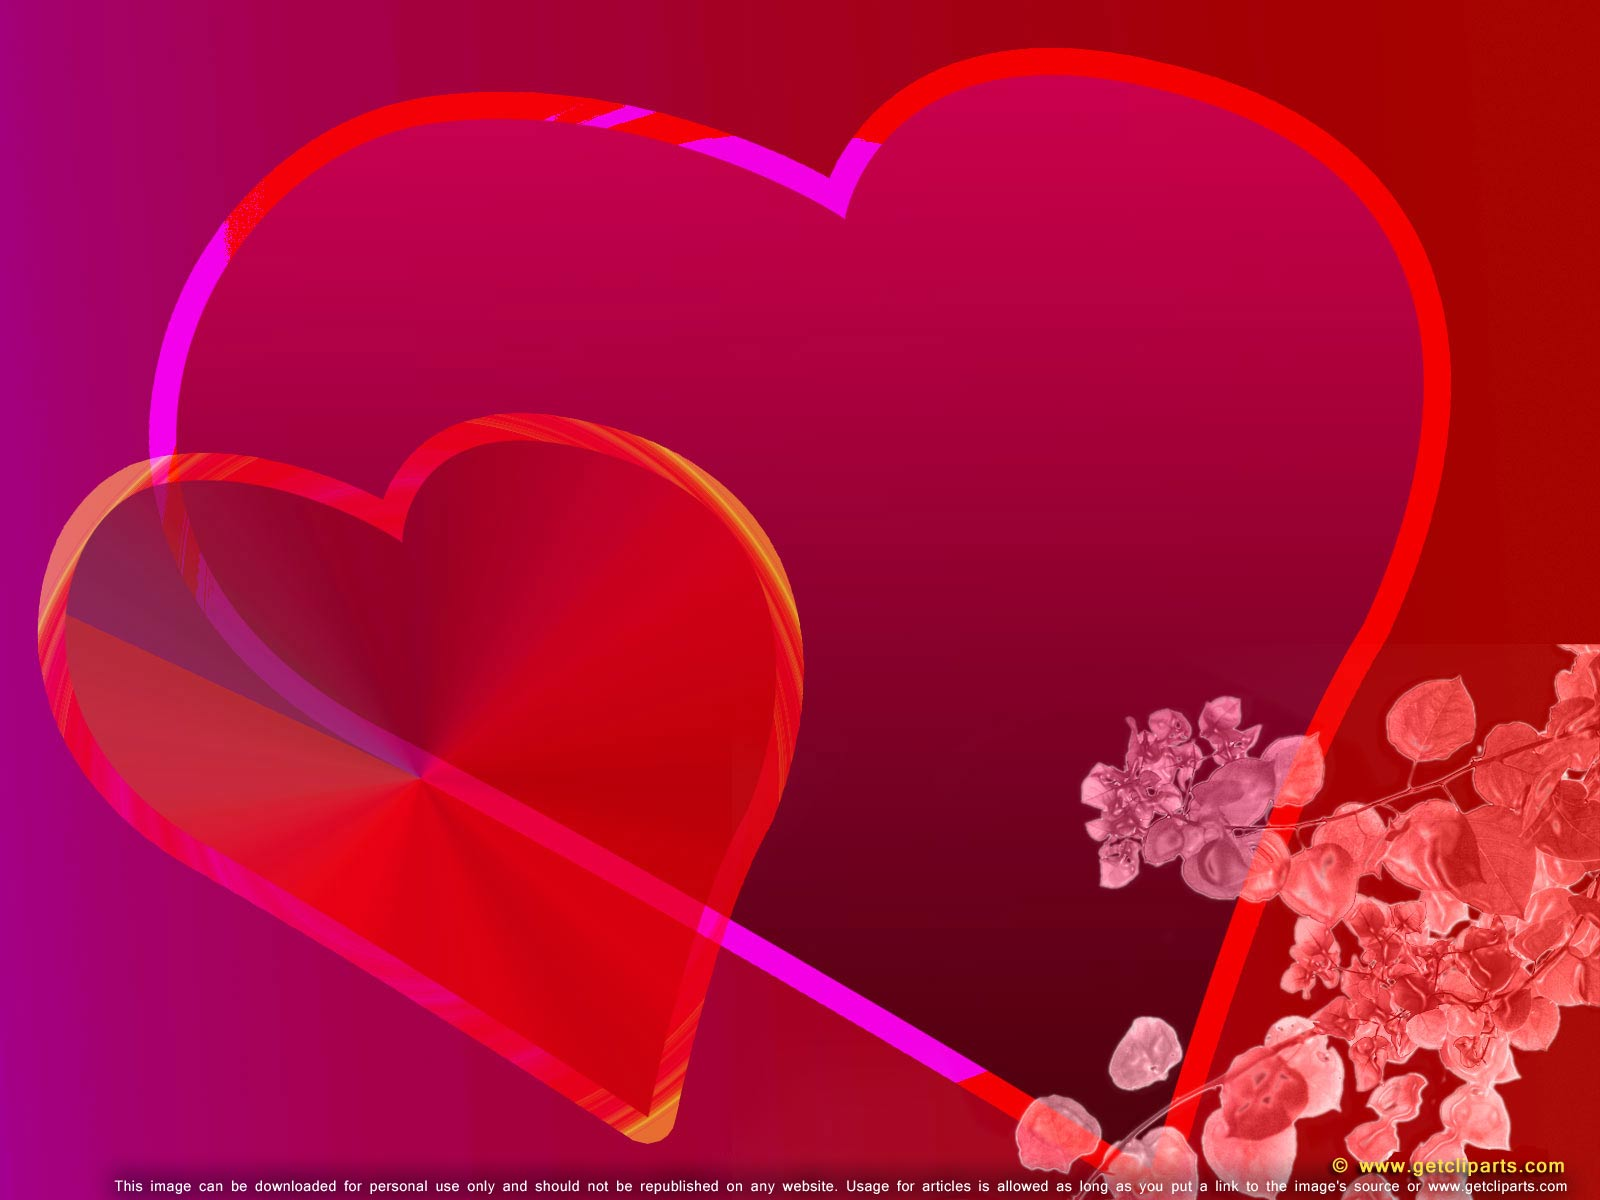 http://www.getcliparts.com/wp-content/uploads/2009/02/valentine-day.jpg